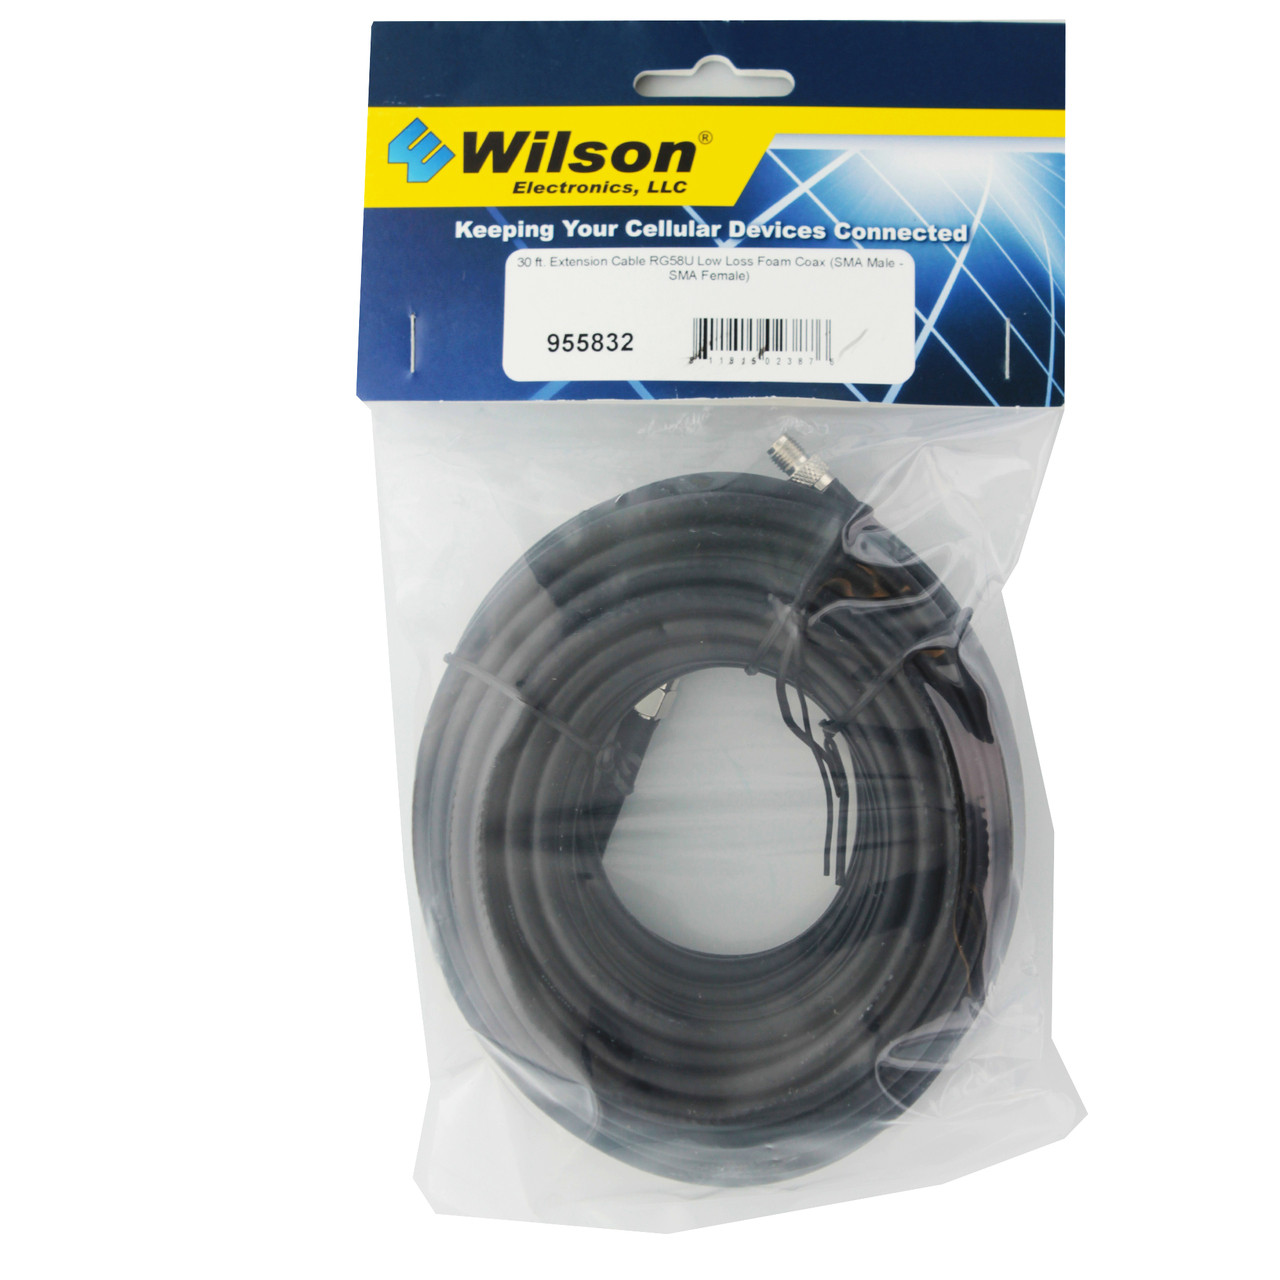 Coaxial Cable Wilson 30 Rg58 Coax Cable Sma Male Sma Female 955832